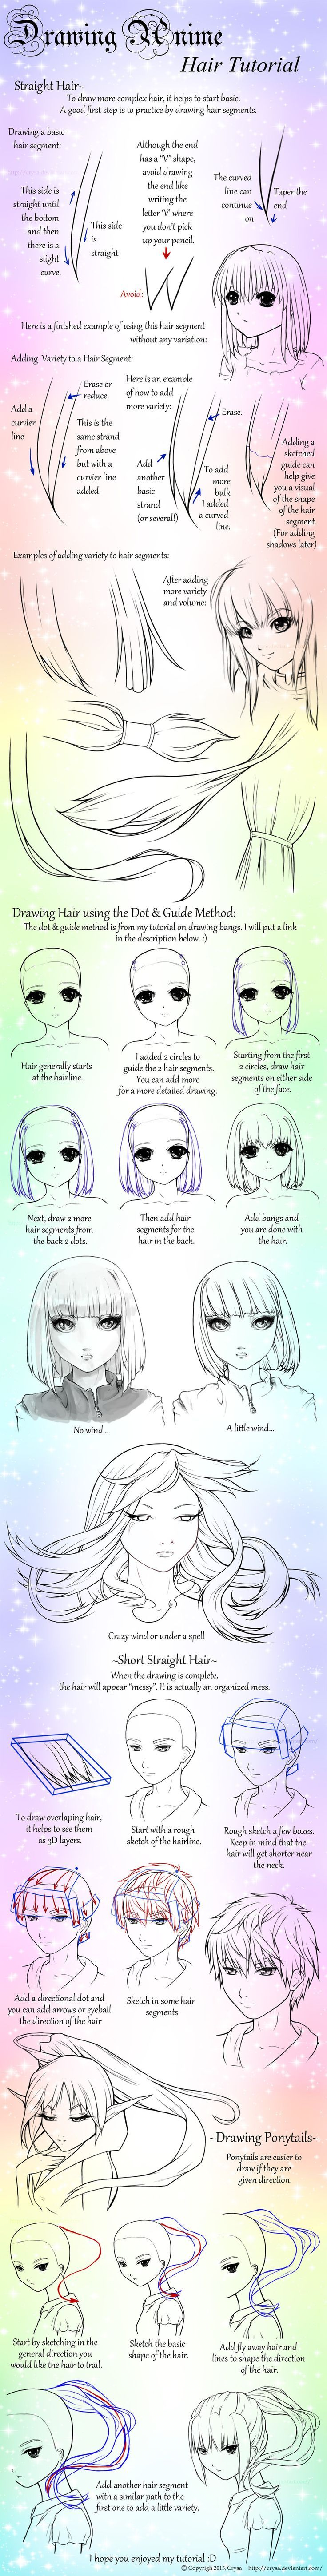 cool Drawing Anime: Straight Hair and Ponytails by Crysa on deviantART